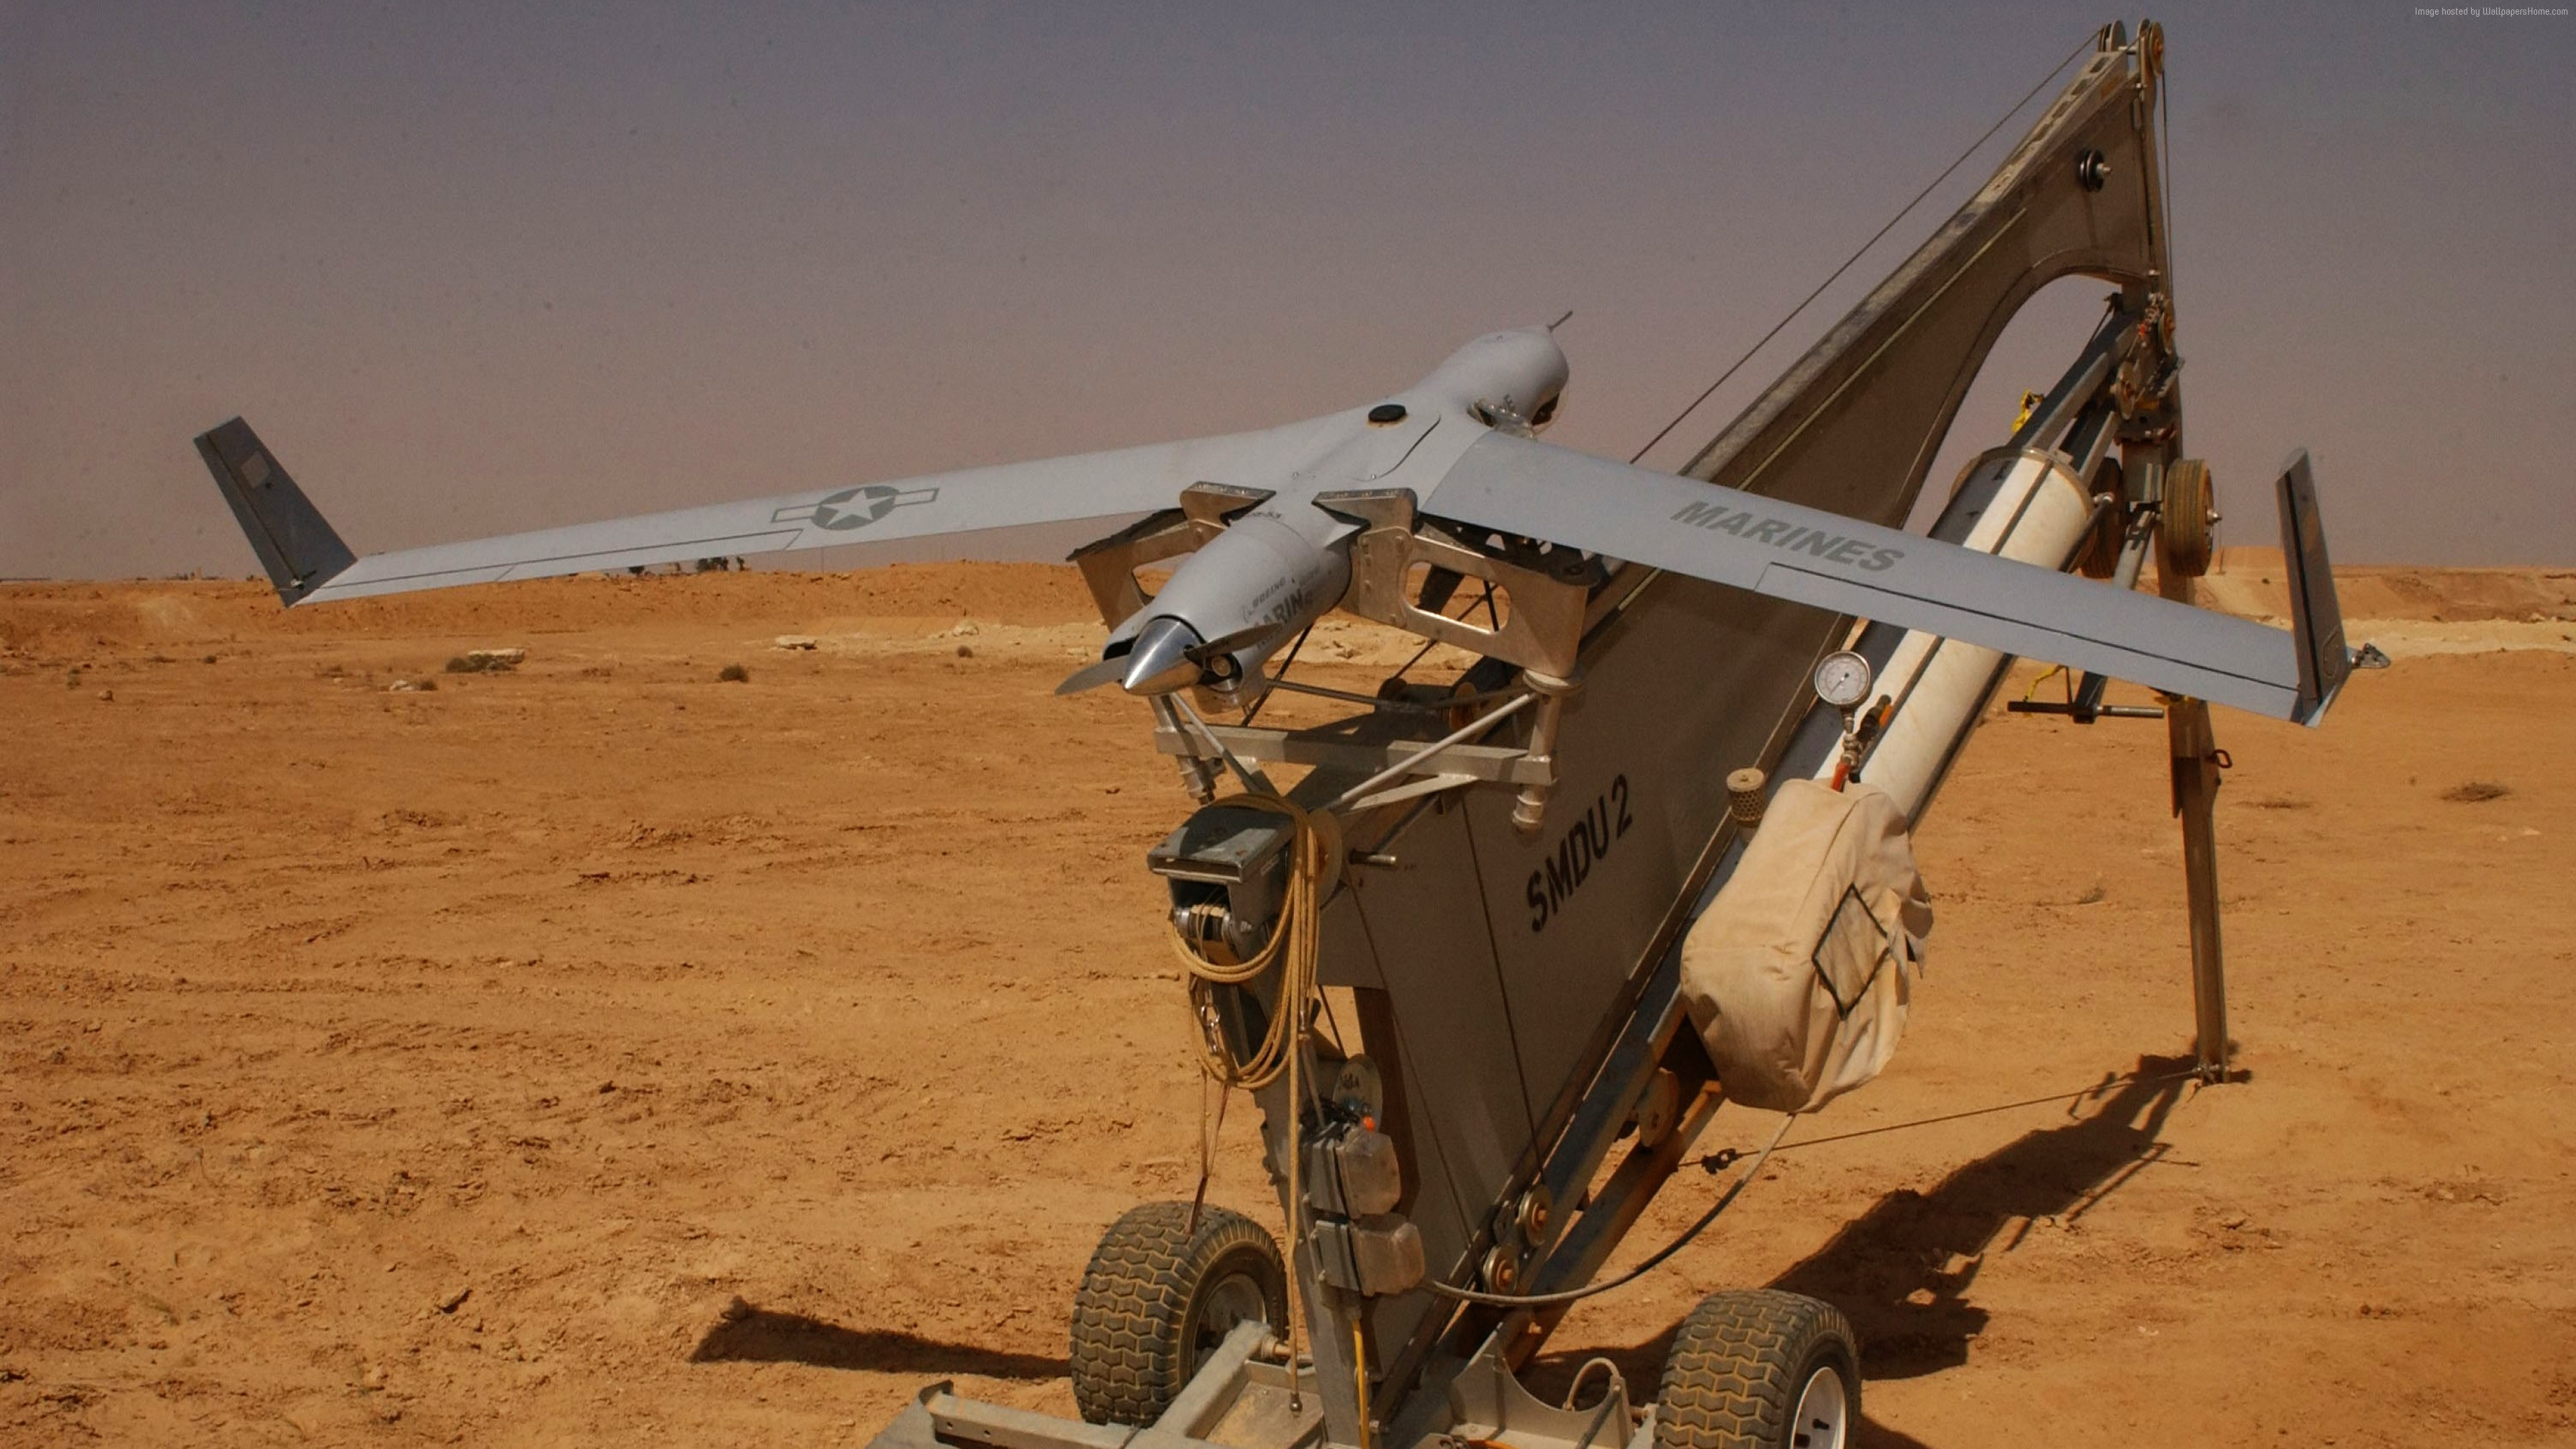 Wallpaper ScanEagle, drone, UAV, U.S. Army, U.S. Air Force, Military